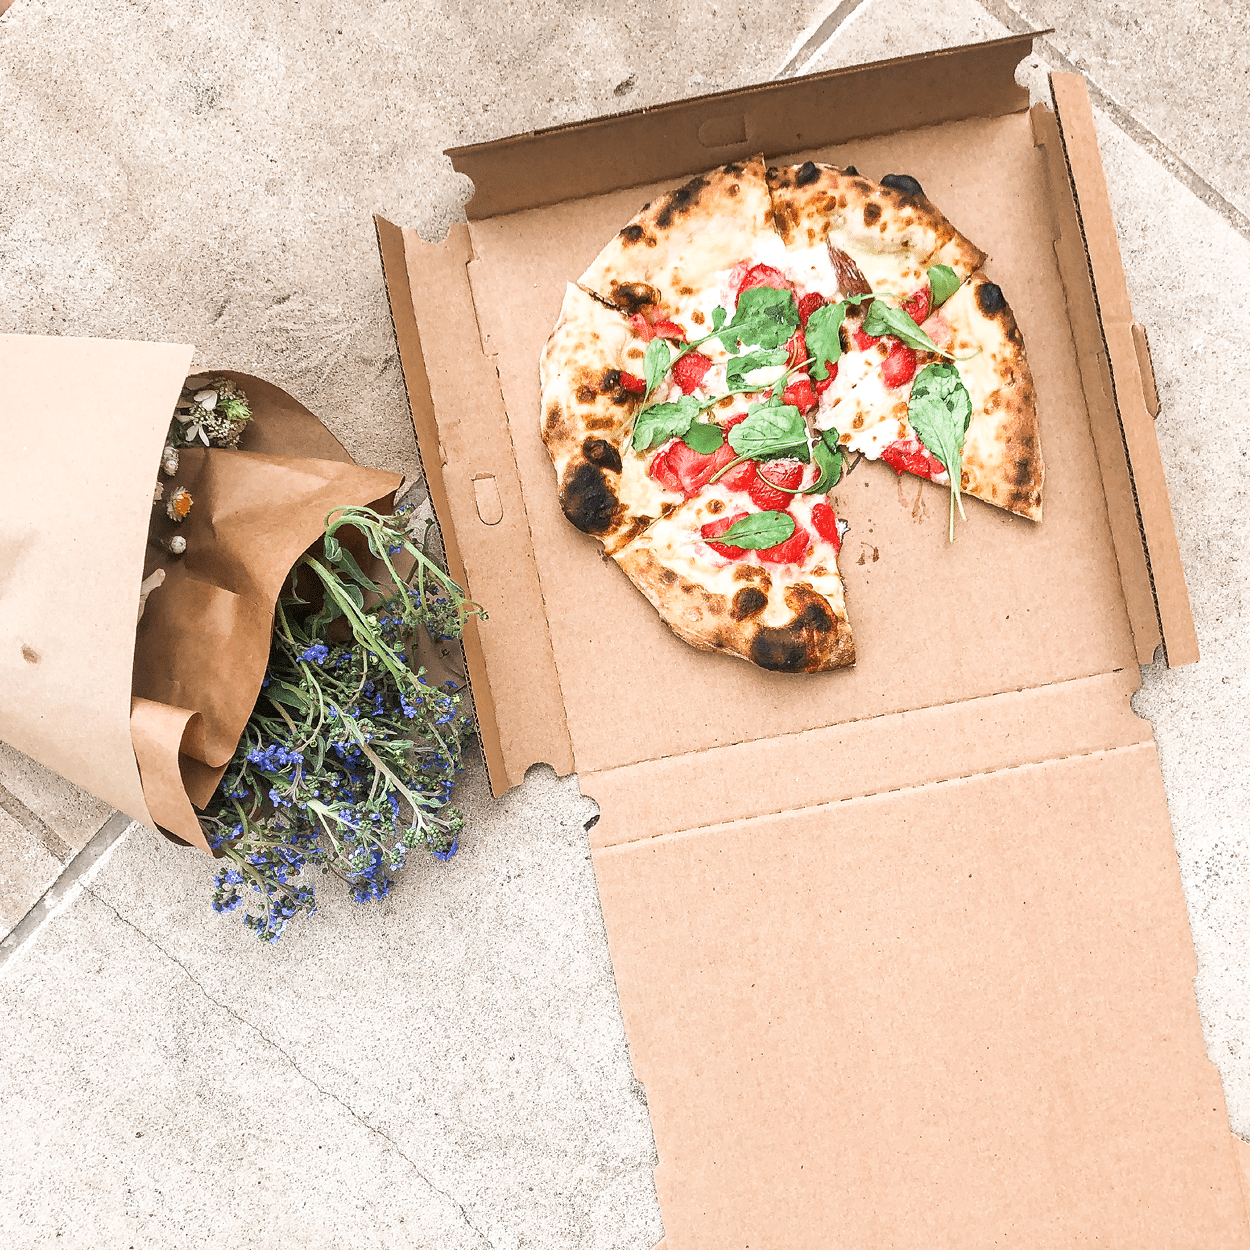 Pizza and flowers from Chicago take-out restaurant